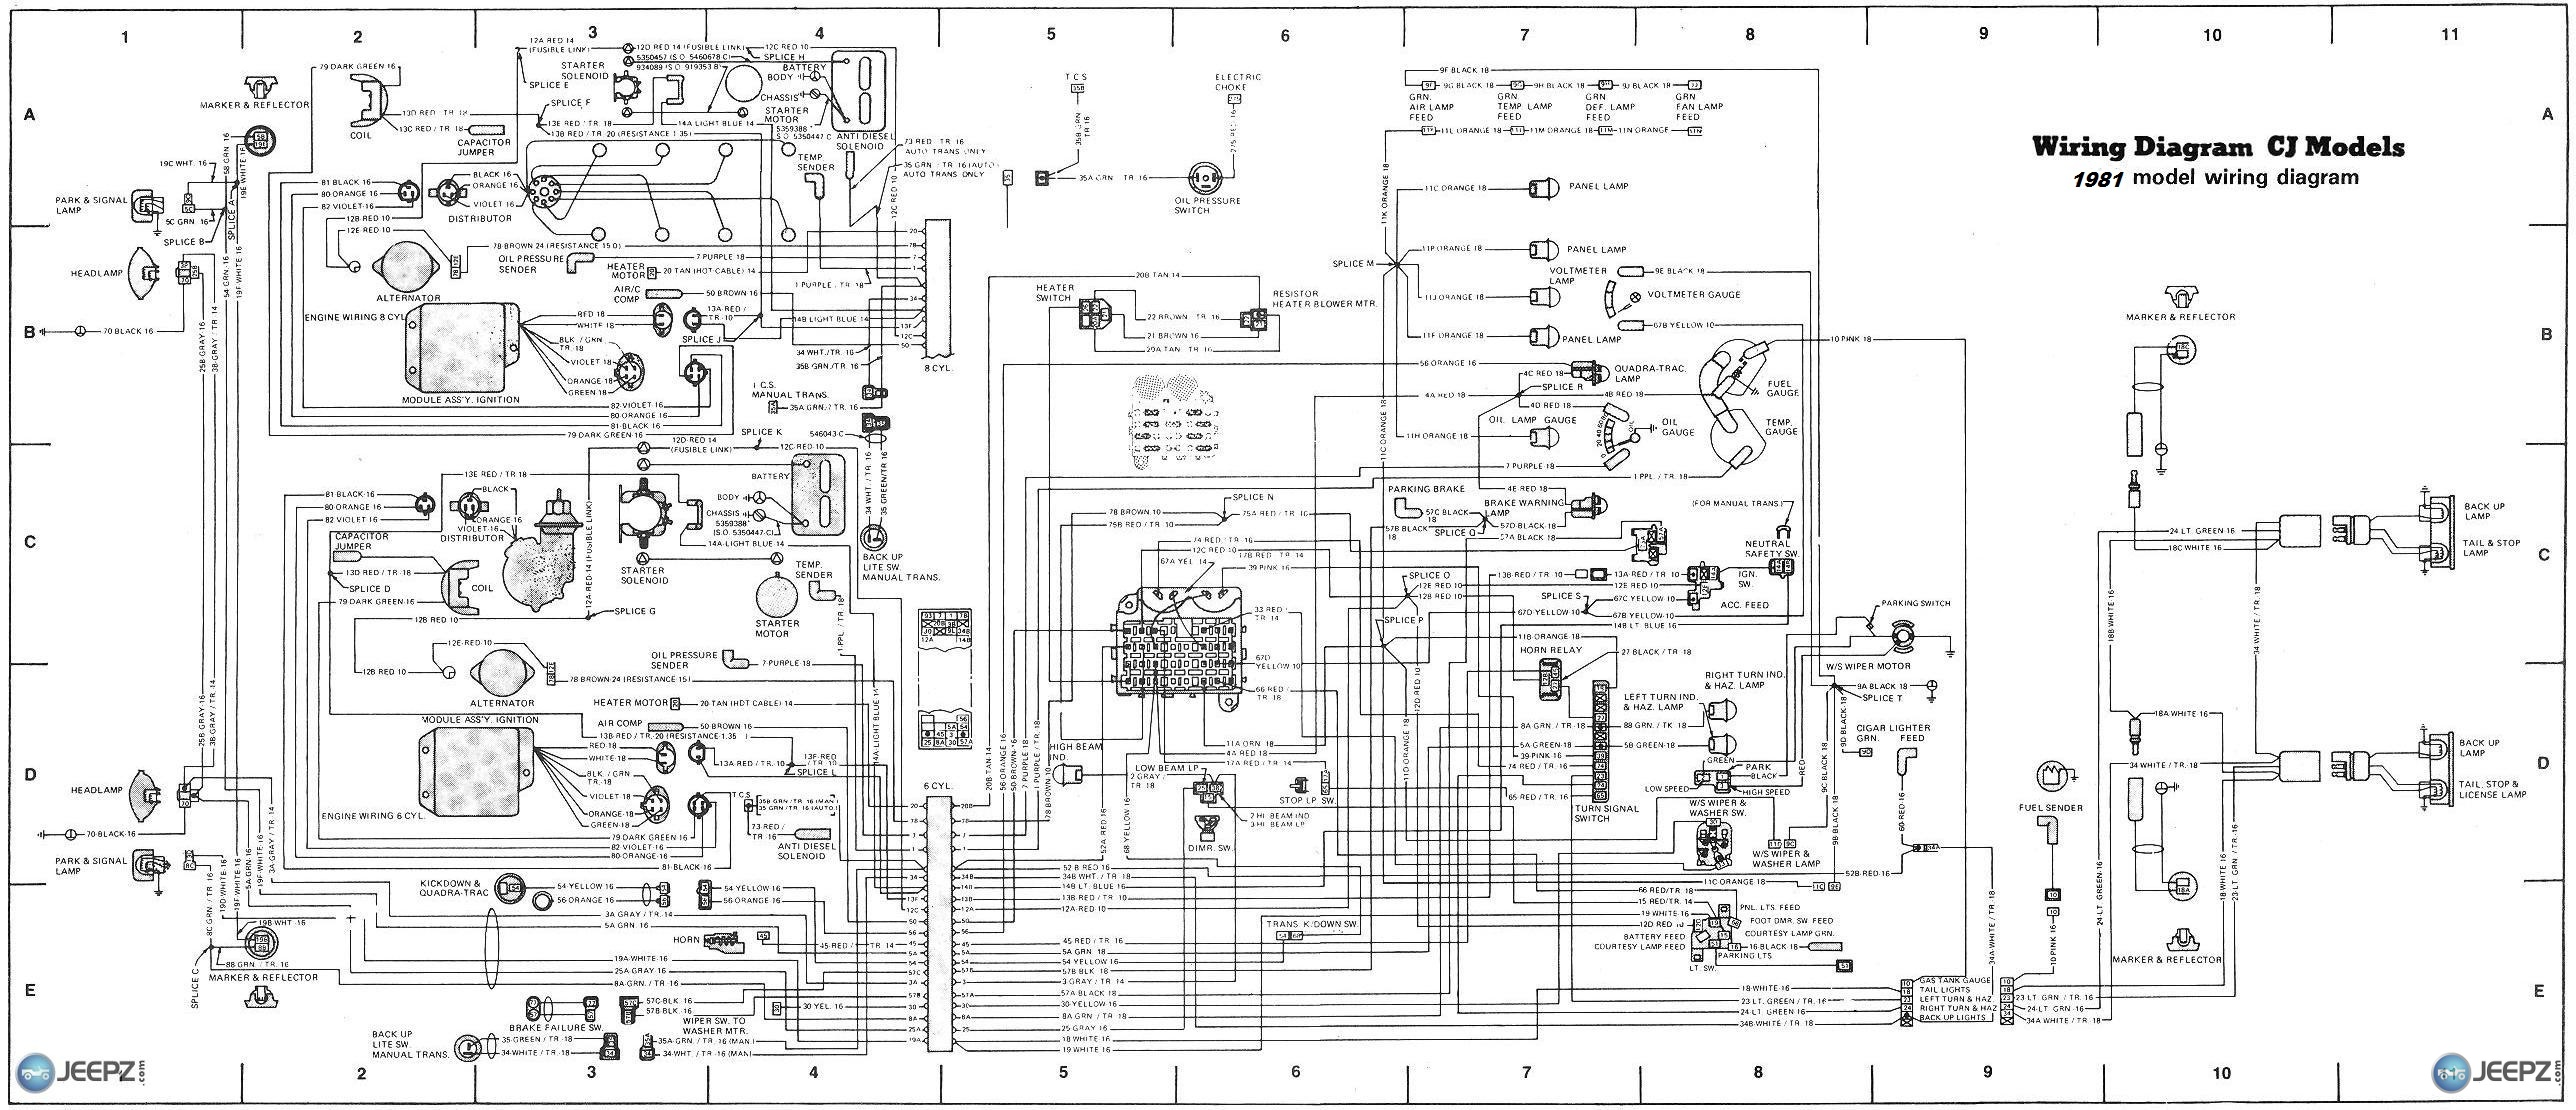 Hose Diagram 1988 Jeep Wrangler Books Of Wiring Tempstar Ac Unit Free Download 1991 Fuse Box Auto Electrical Rh Mit Edu Uk Hardtobelieve Me